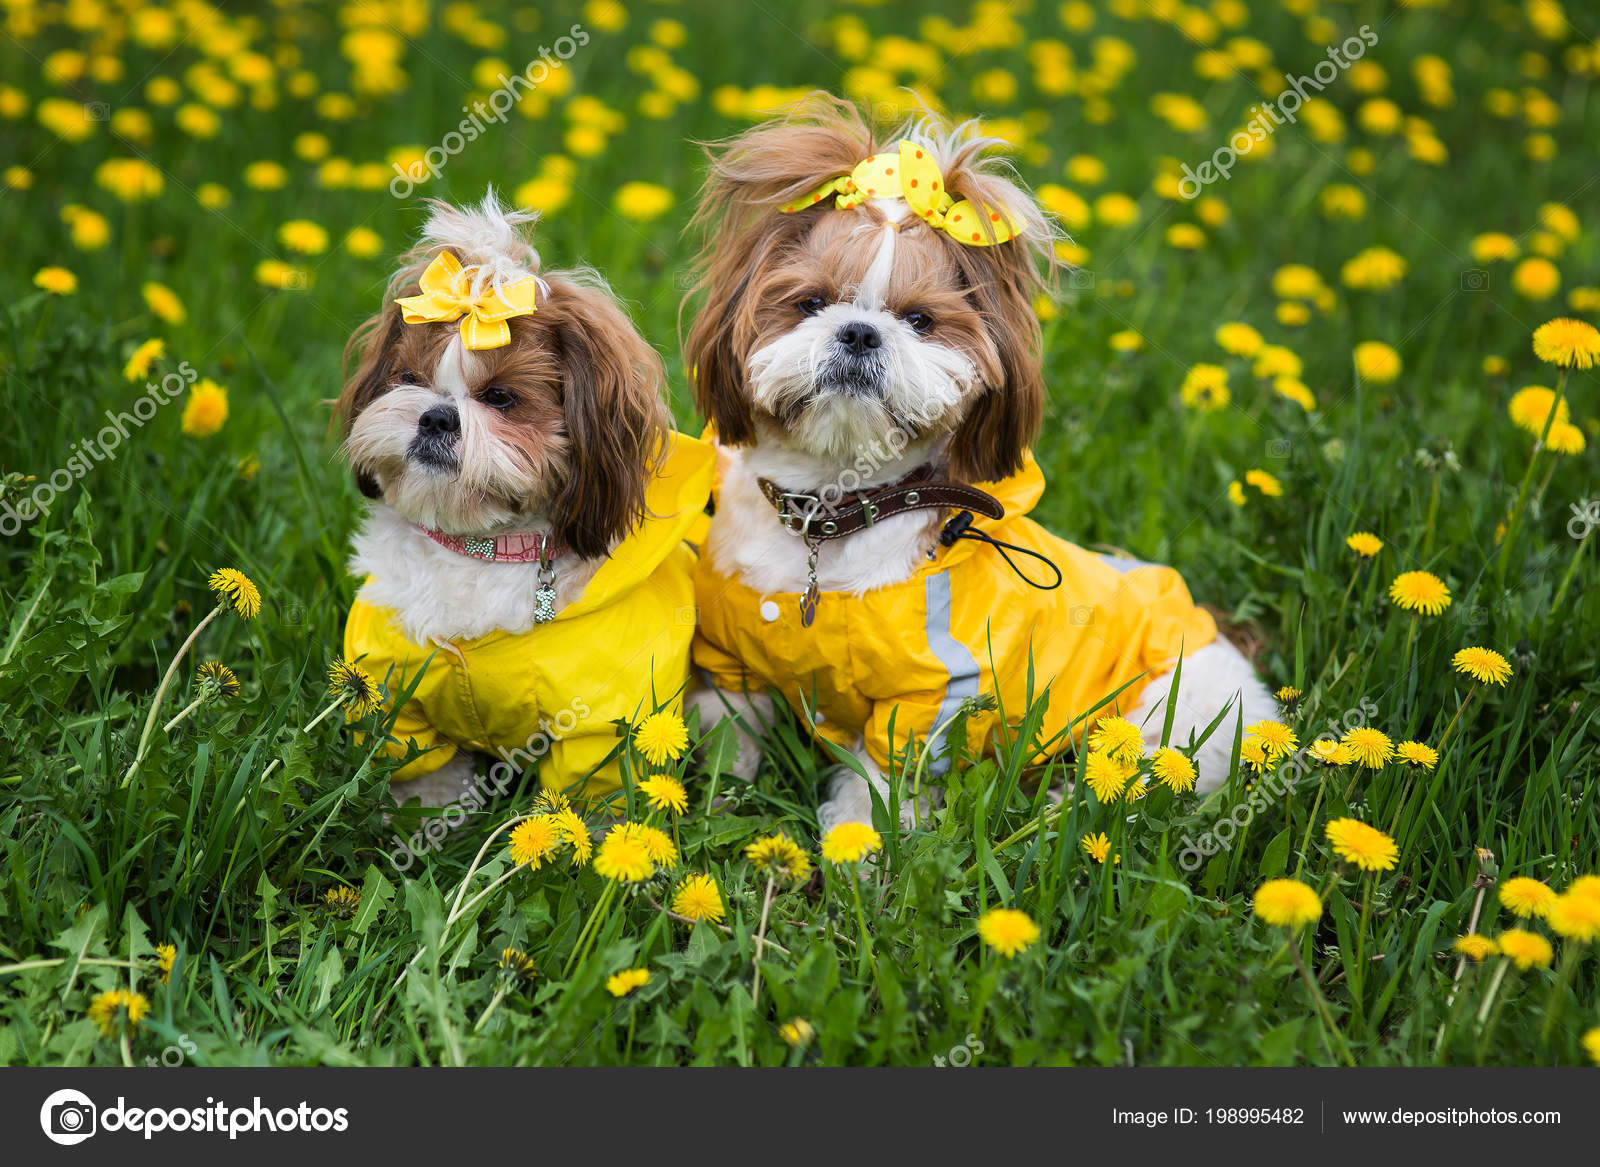 Cute Little Dog Sitting Yellow Flowers Yellow Overalls Bows Green